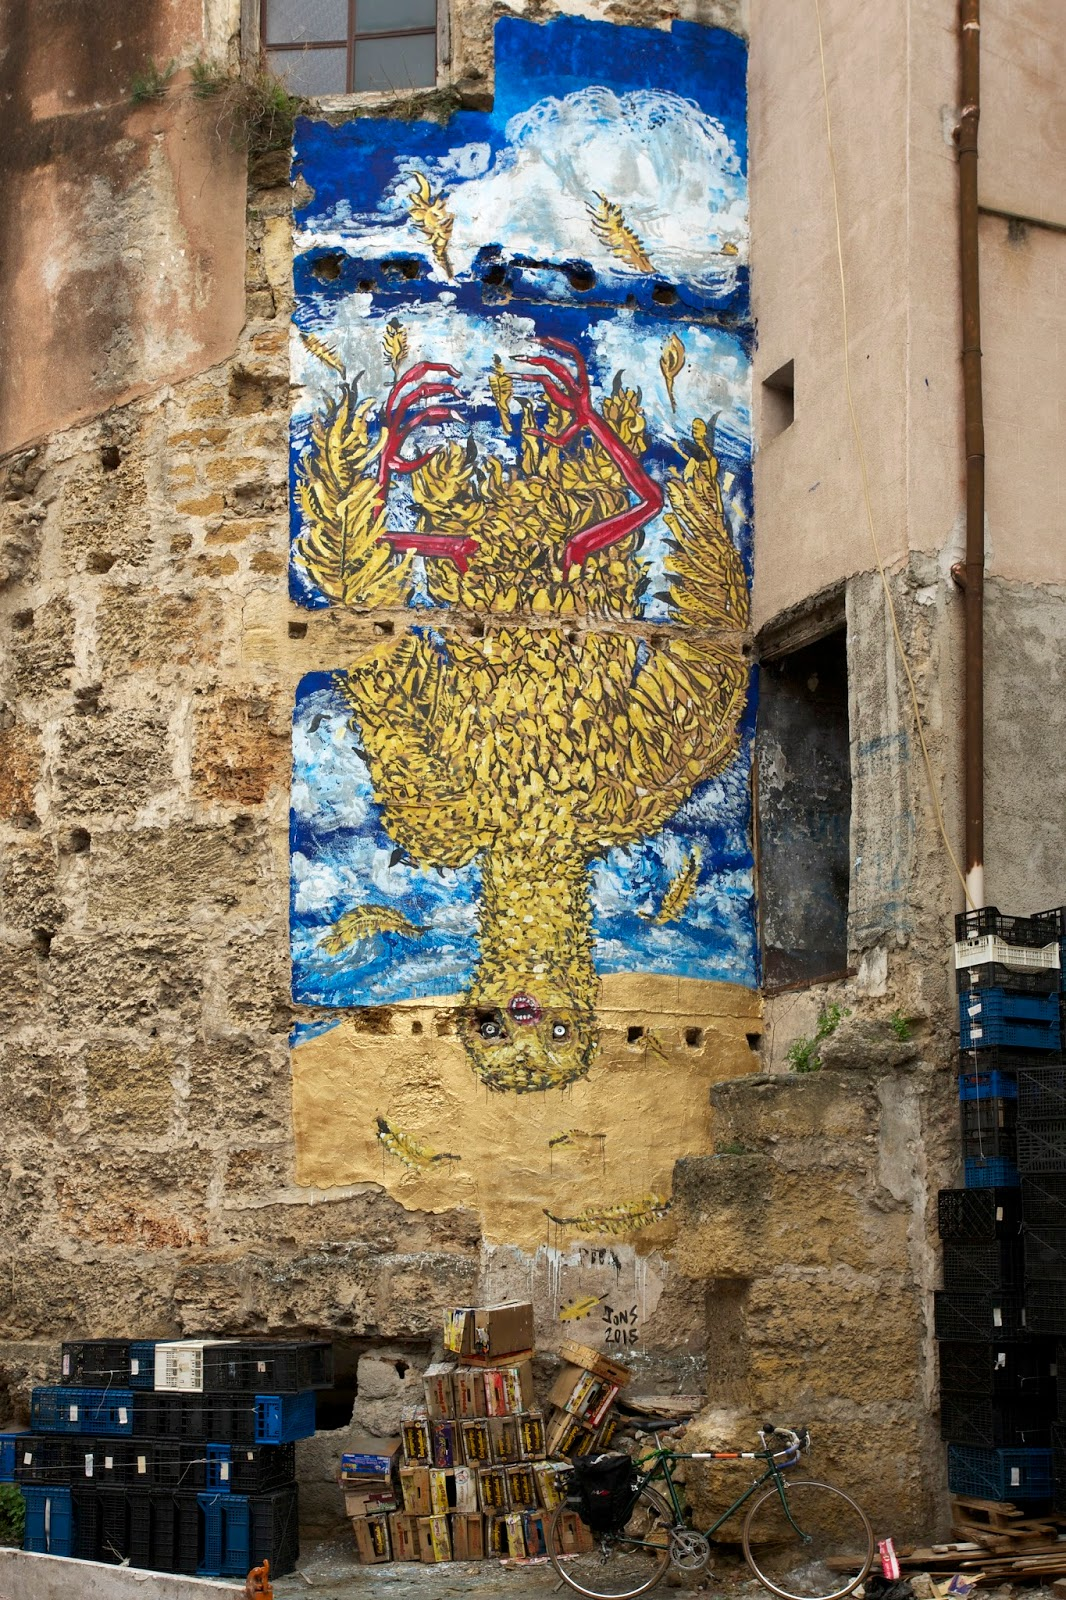 emajons-new-mural-in-vucciria-and-kalsa-palermo-02